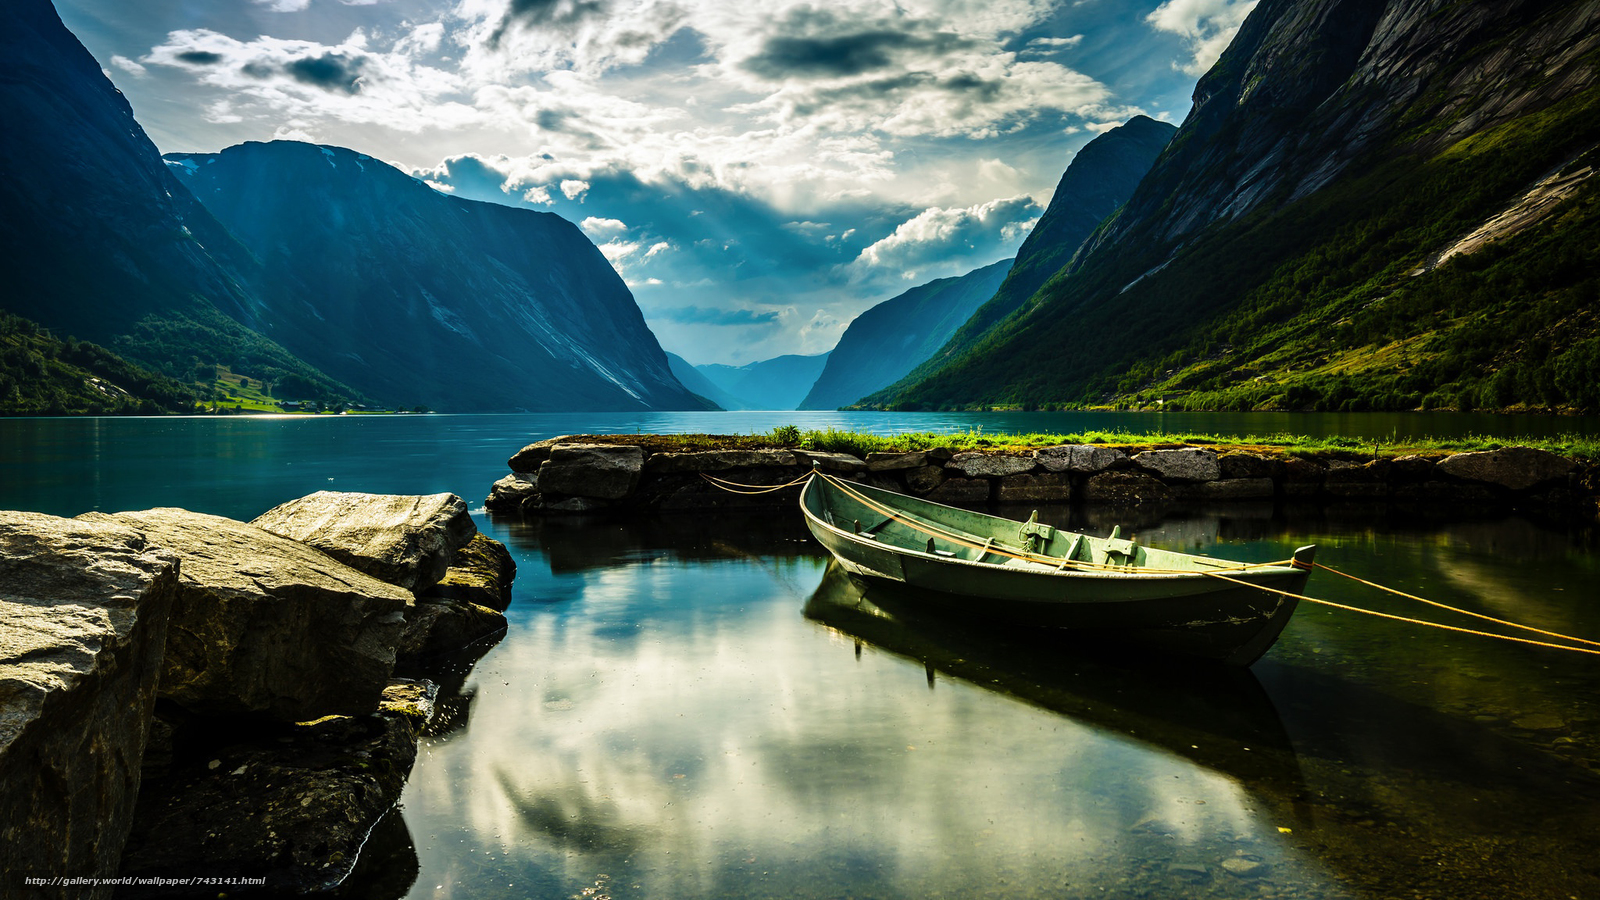 a boat, boats, landscape, nature, water, River, lake, peace, relaxation, the mountains, sky, clouds, Coast